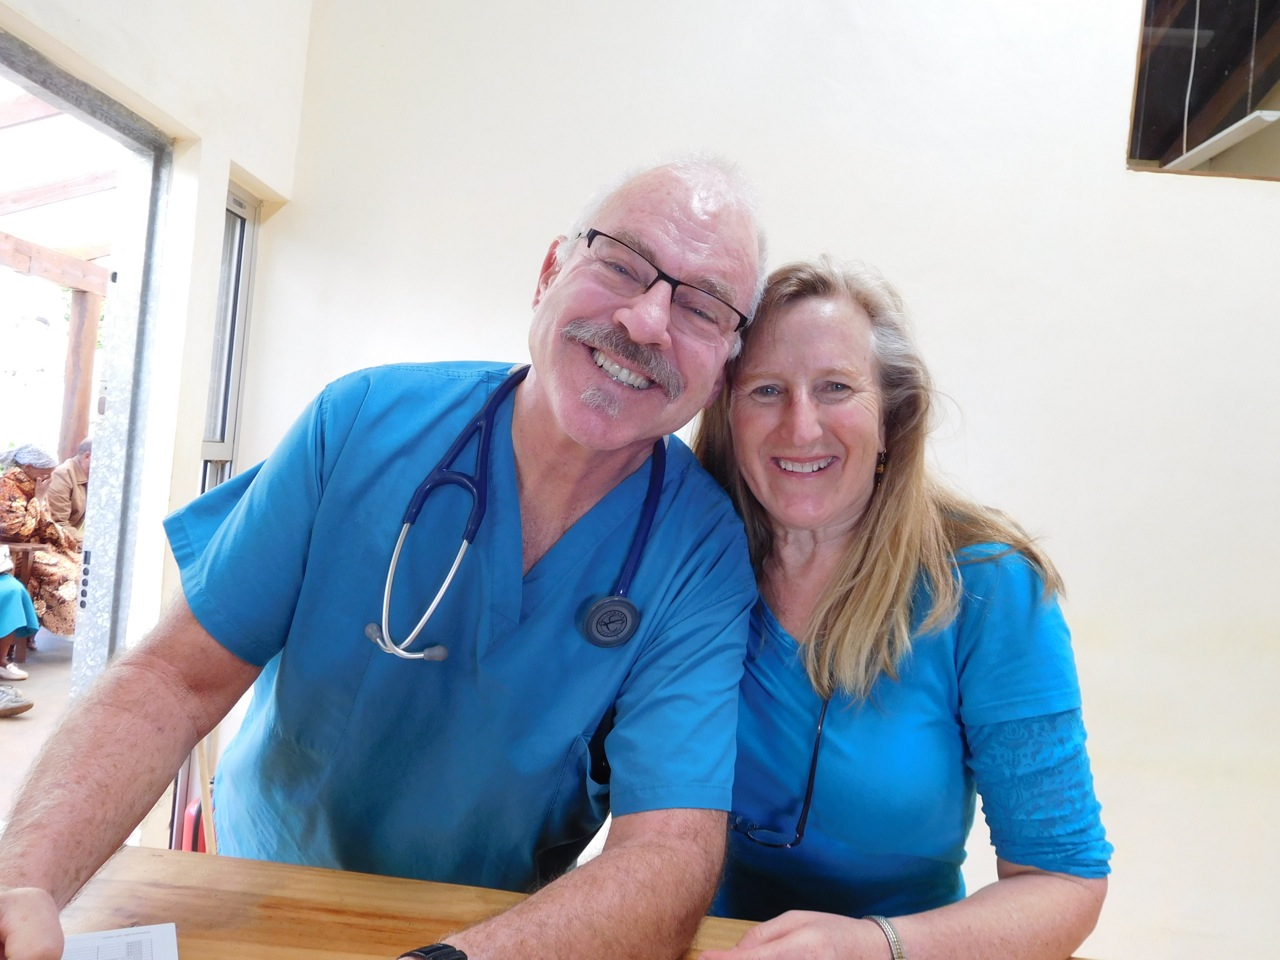 Dr. Frank and Dr. Loie in outpatient clinic